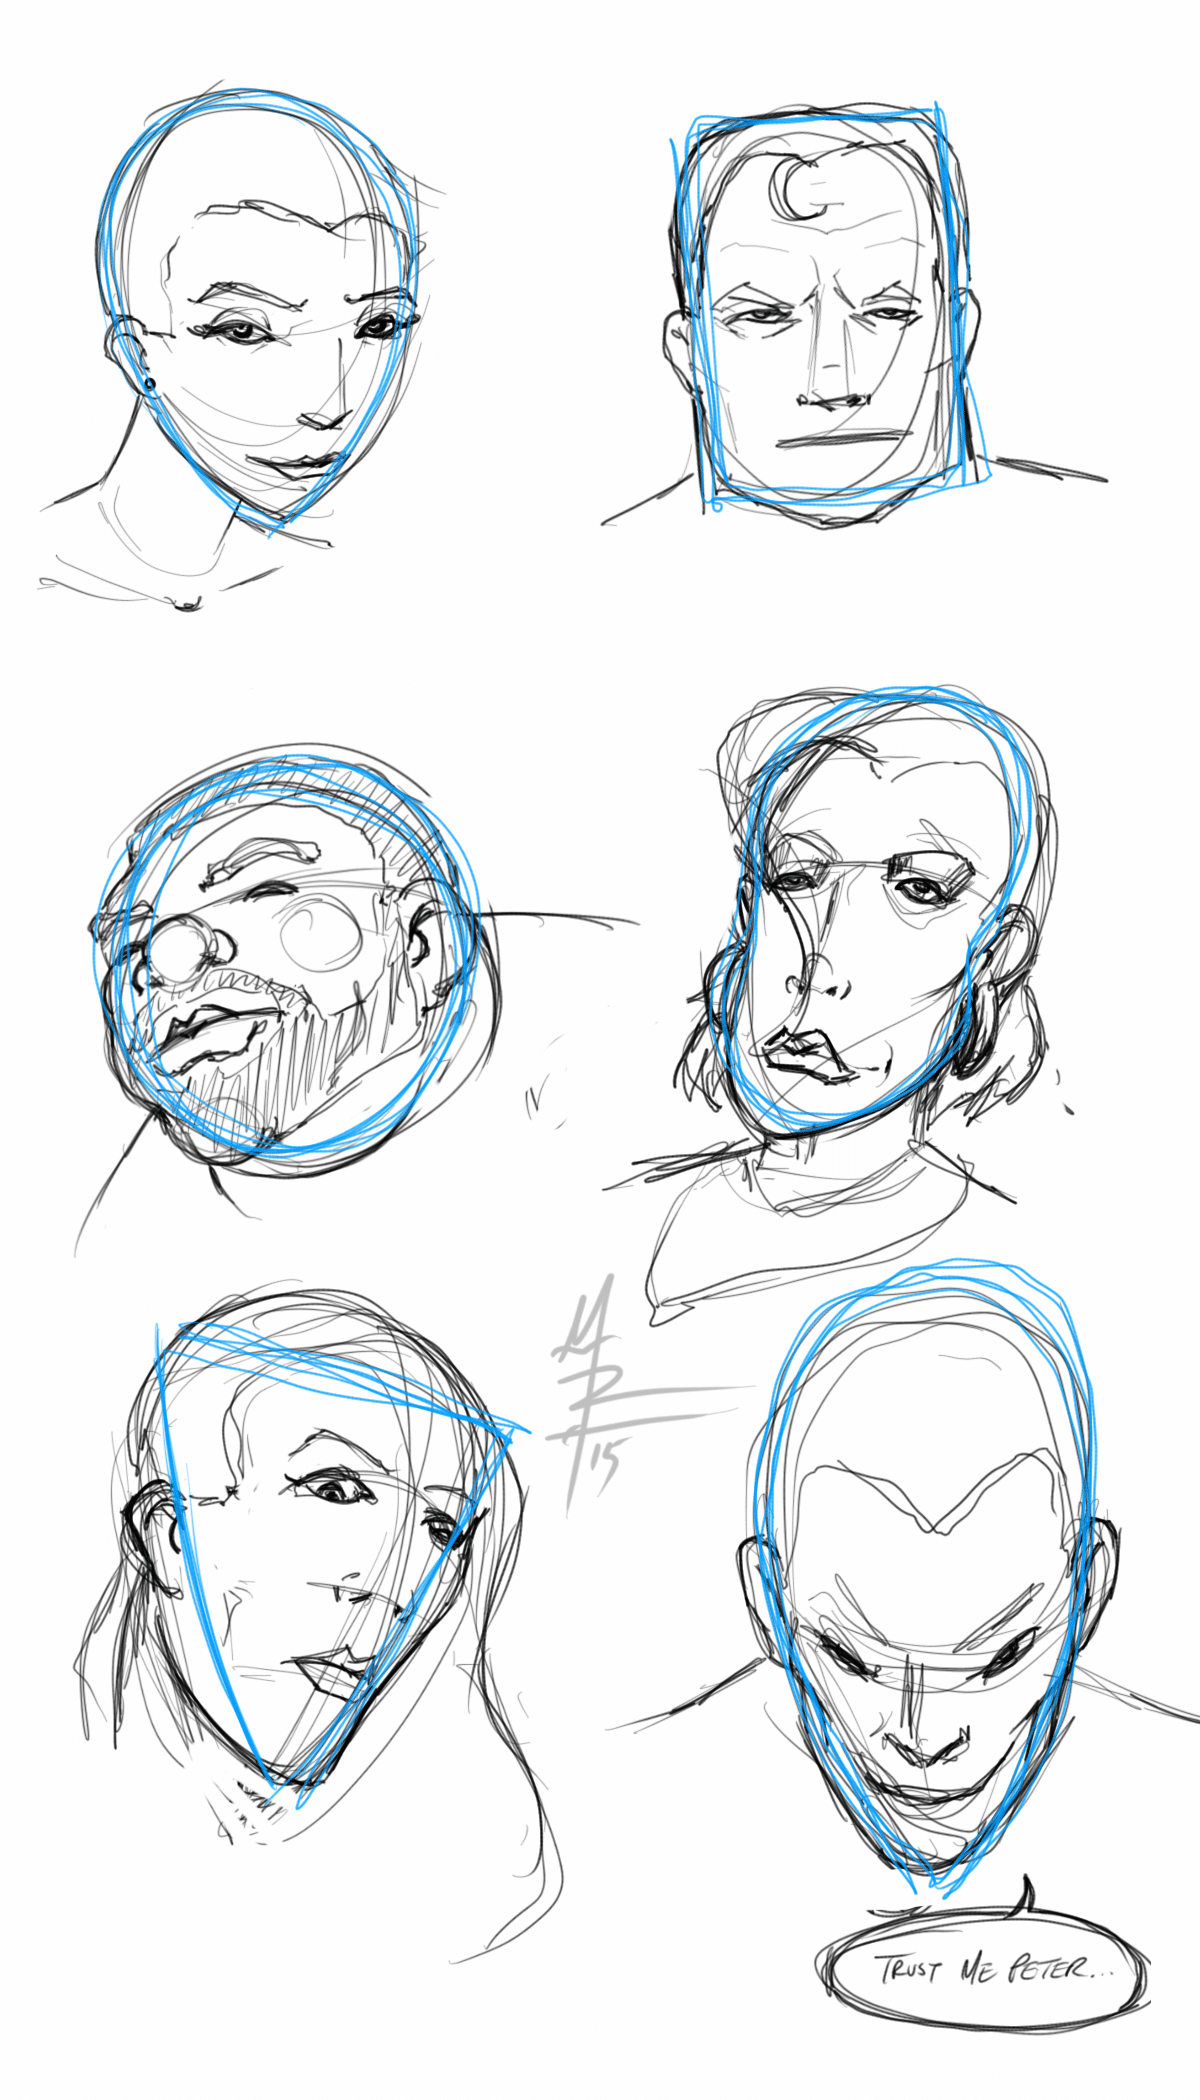 head shapes warm up sketches - combo version